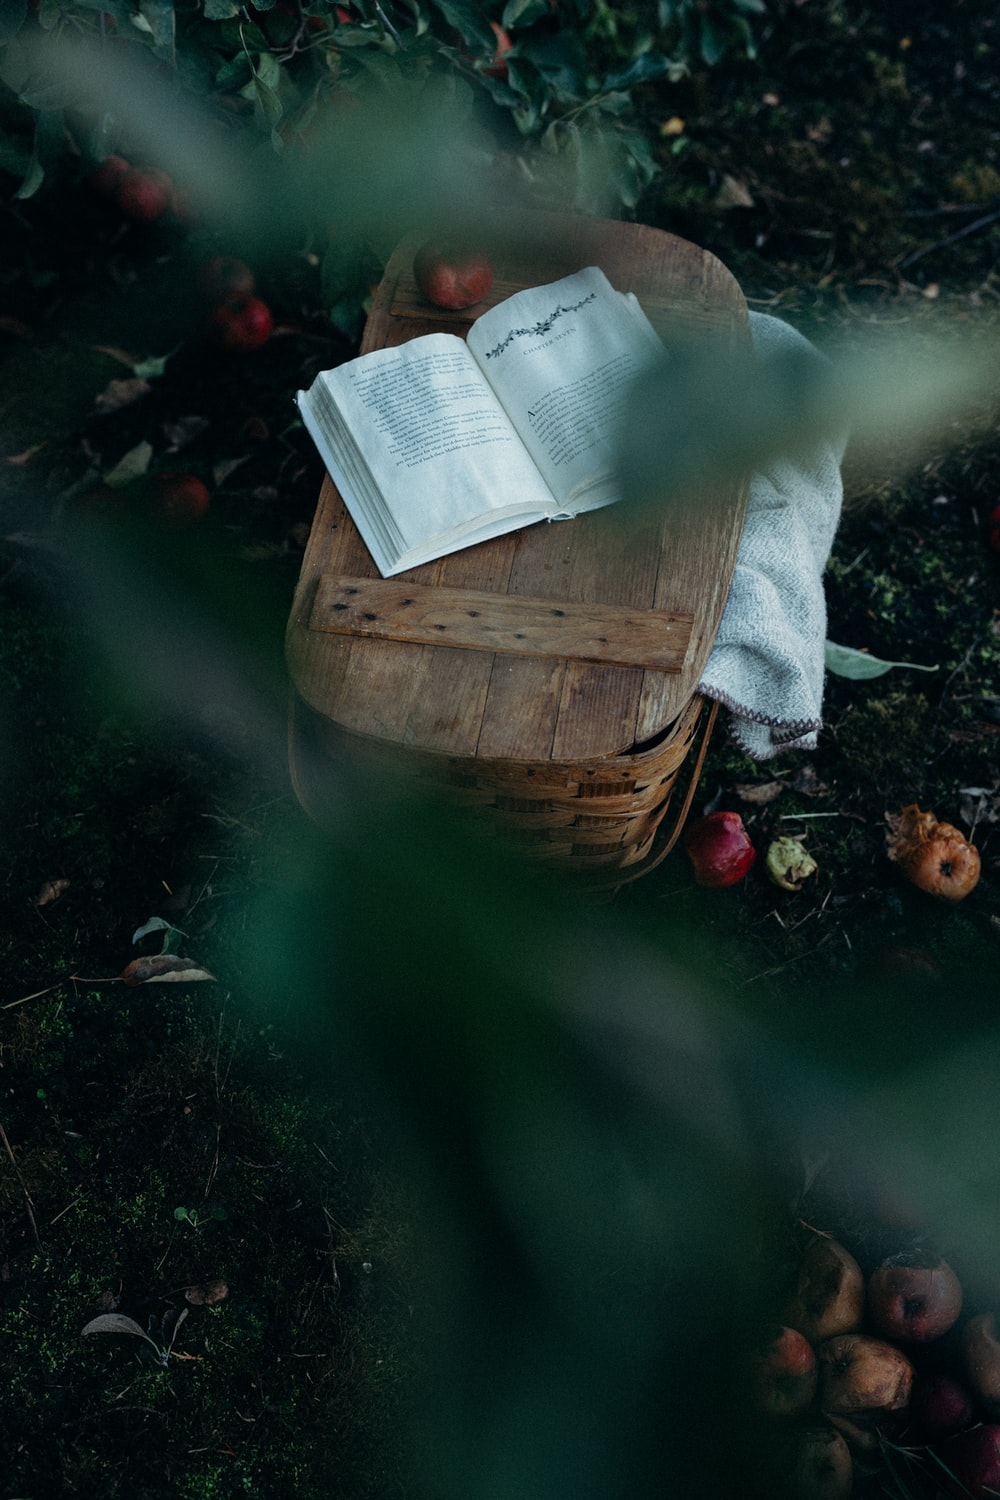 photo of opened book on top of brown basket